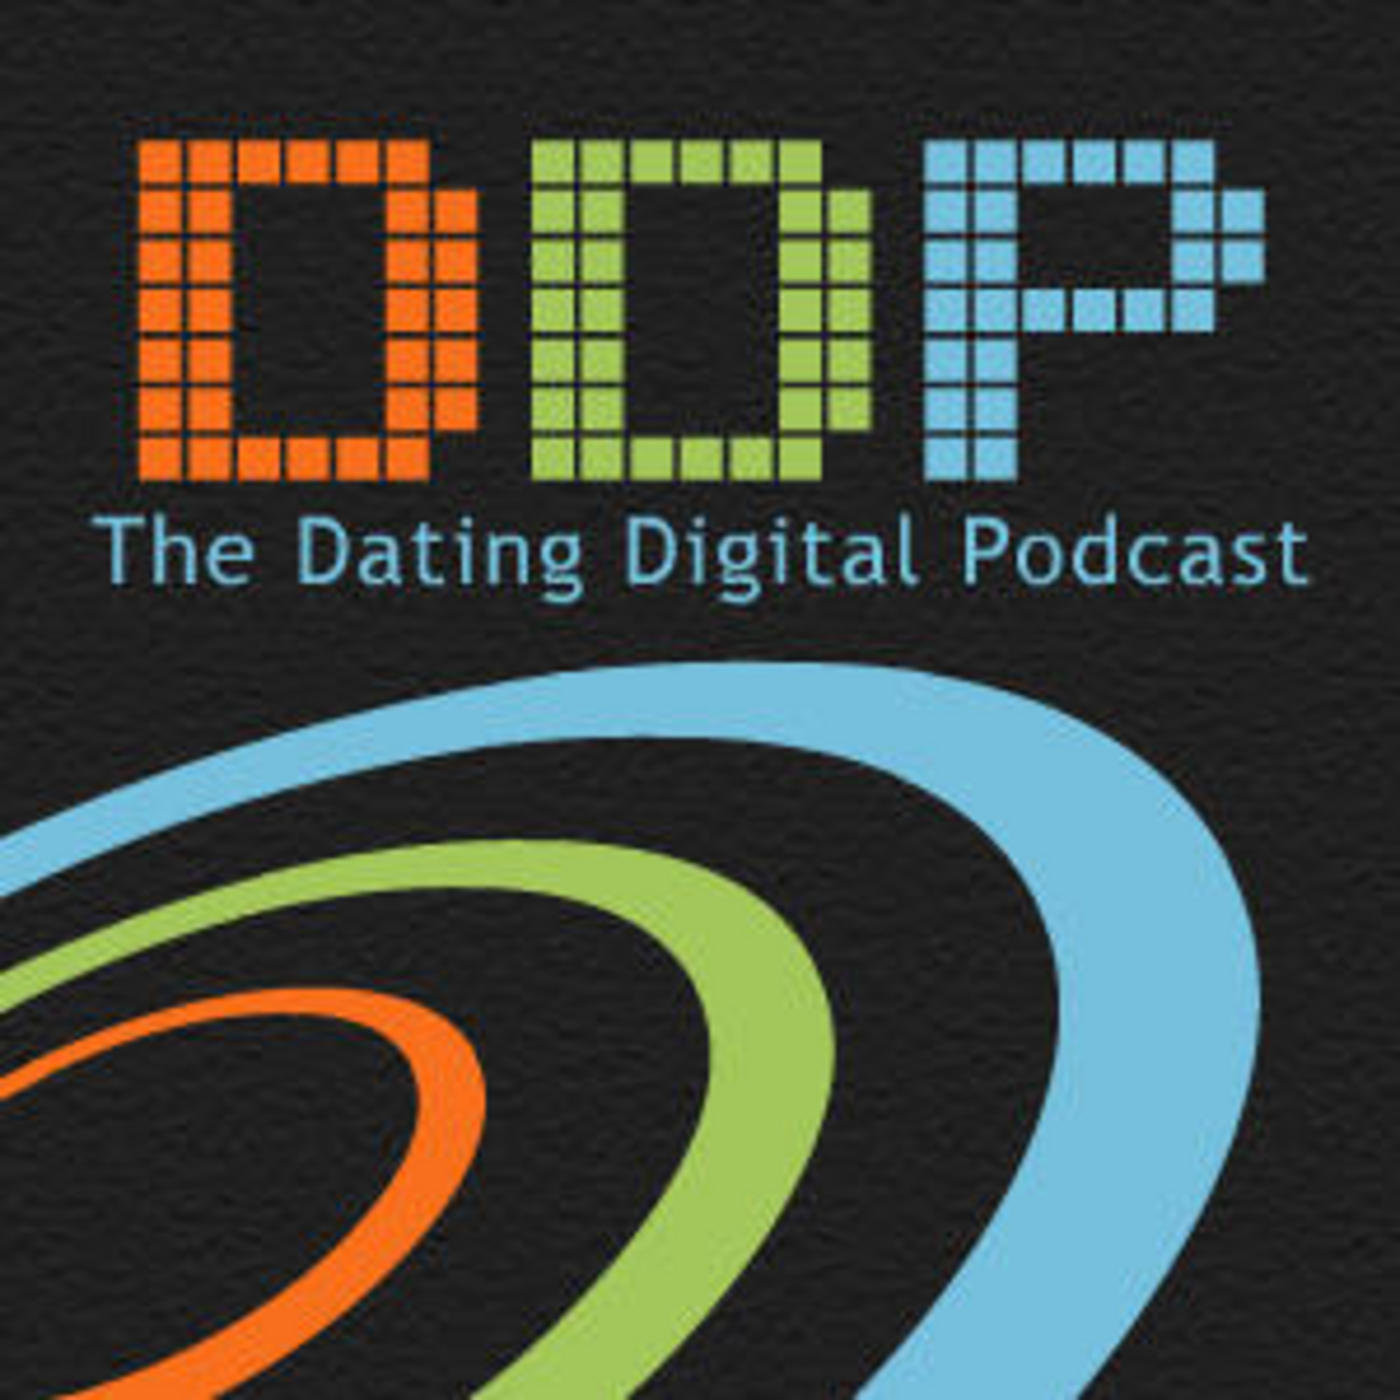 dating digital podcast Podcast addict is the #1 podcast app on android with 8+m downloads, 400k reviews, 1 billion episodes downloaded and an average rating of 46/5.